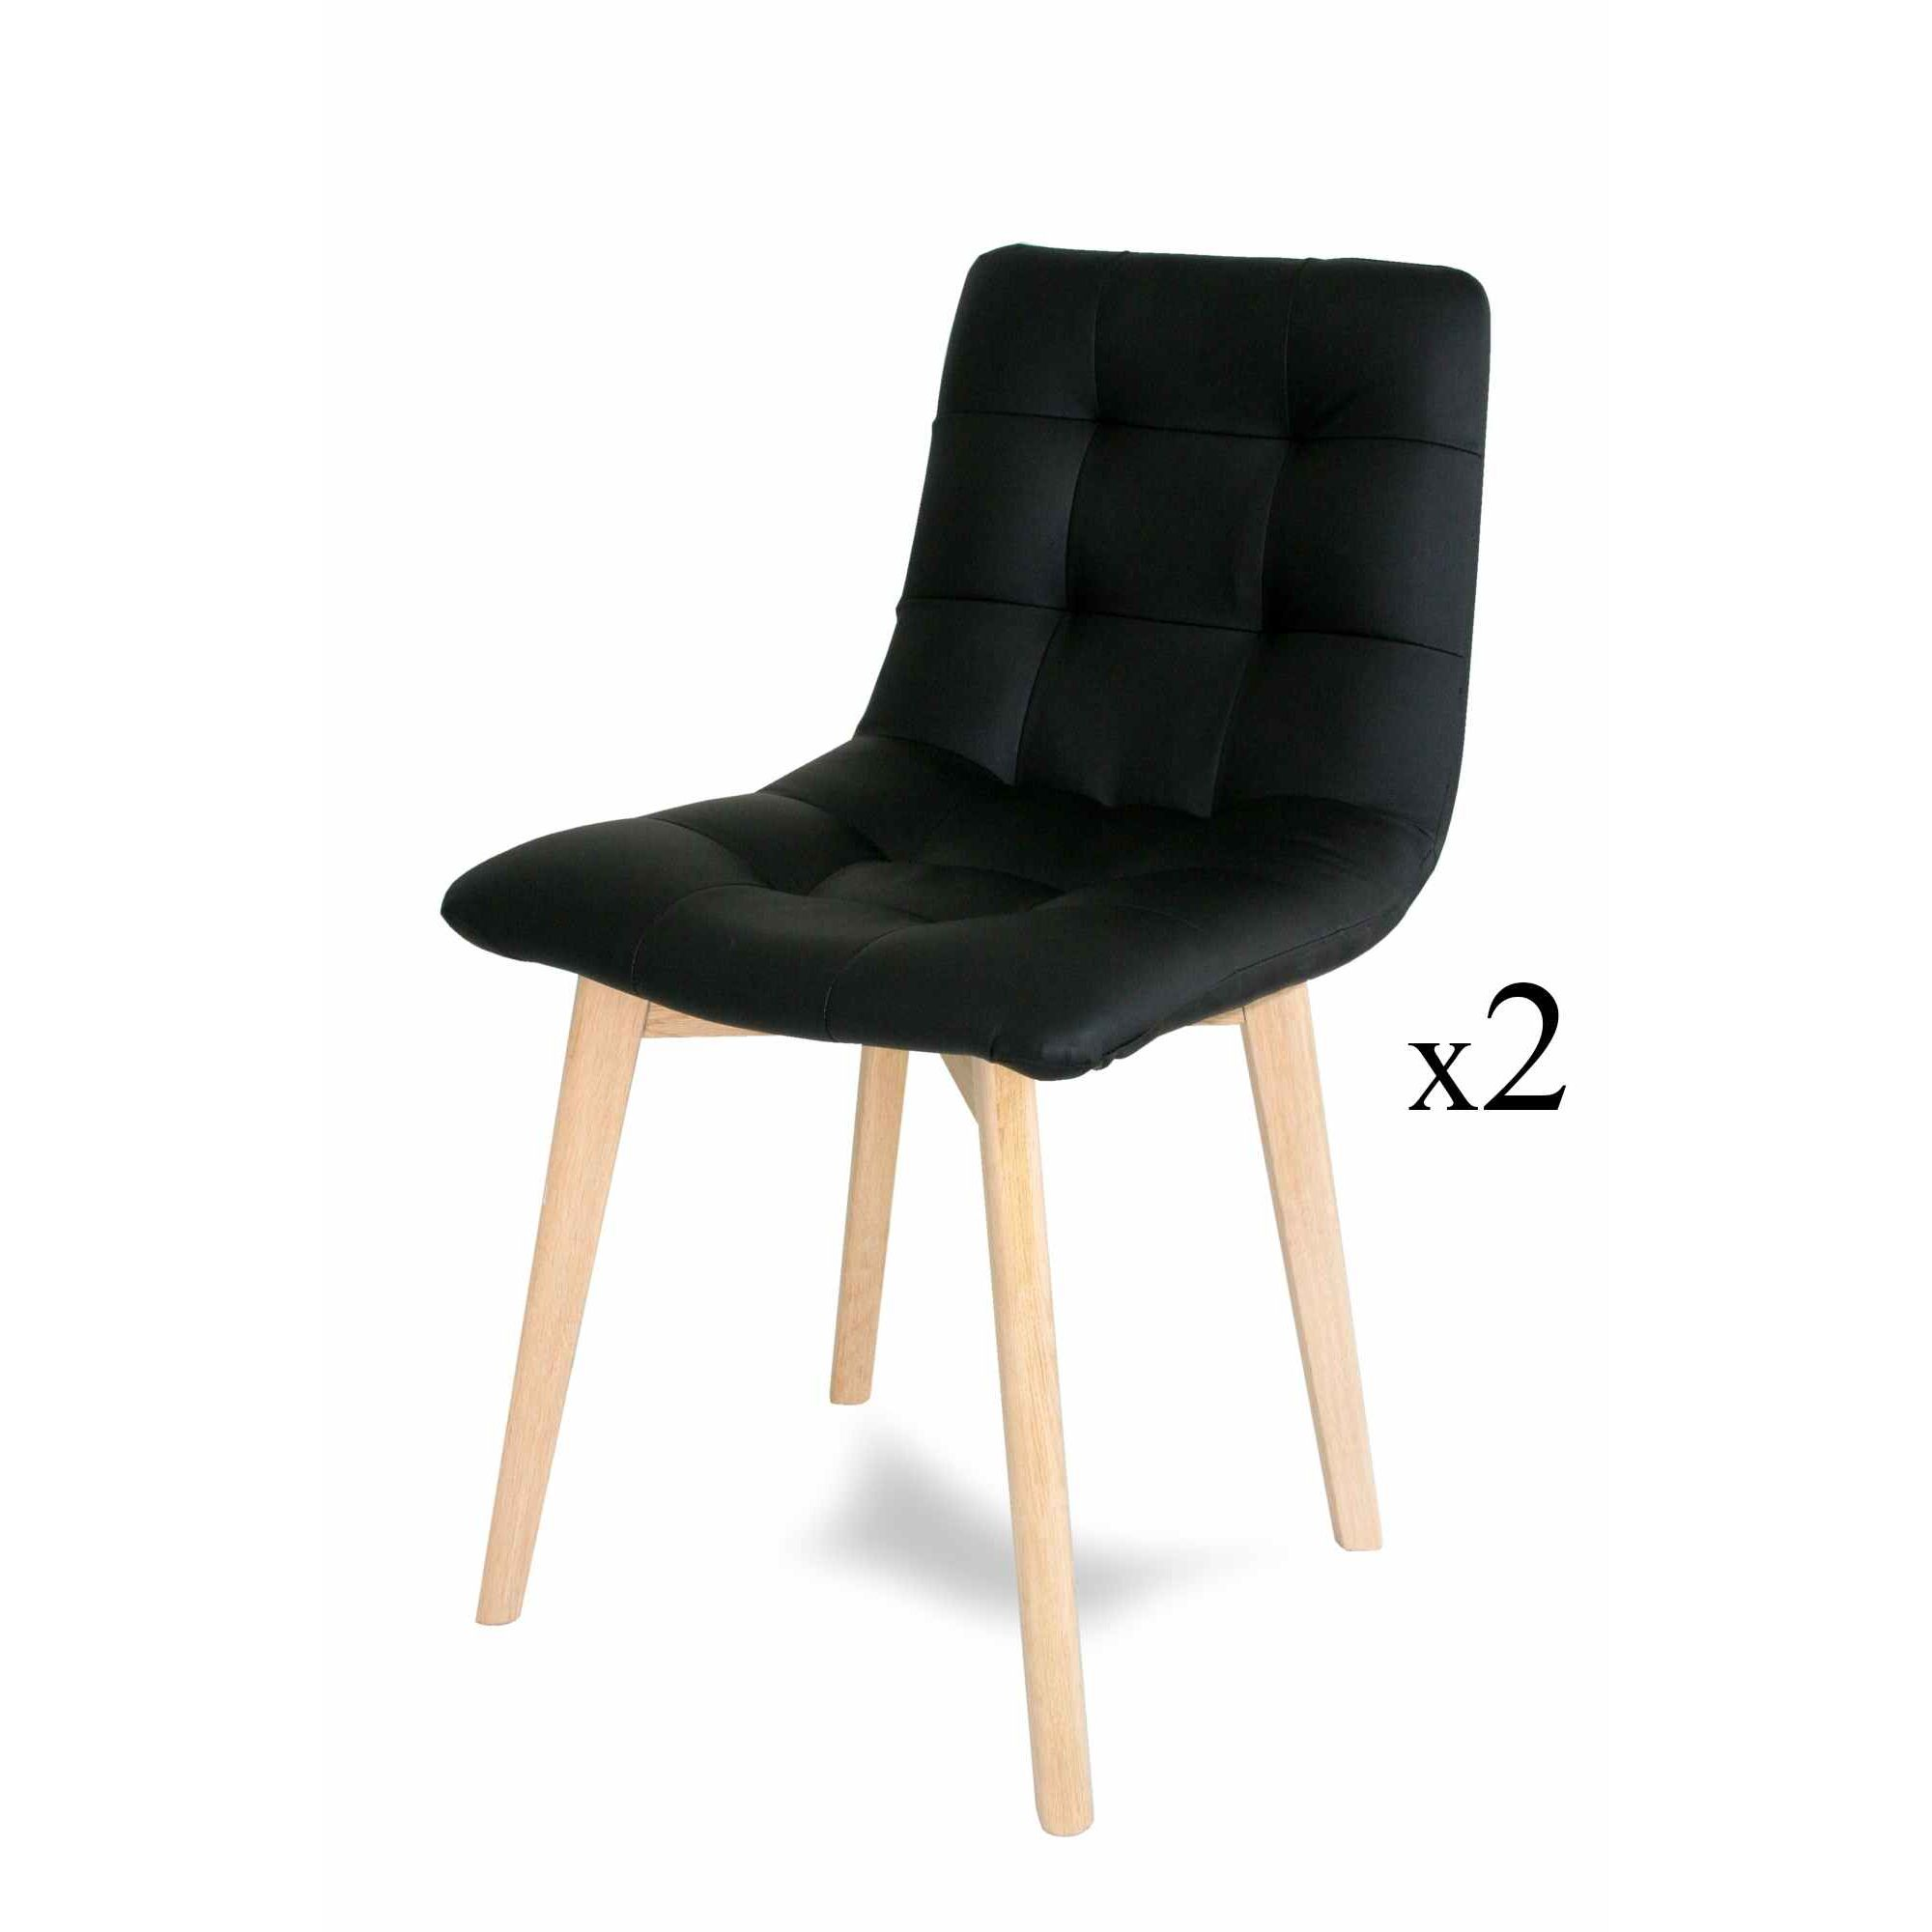 deco in paris 9 lot de 2 chaises scandinave noir fany chaise noirx2 fany. Black Bedroom Furniture Sets. Home Design Ideas